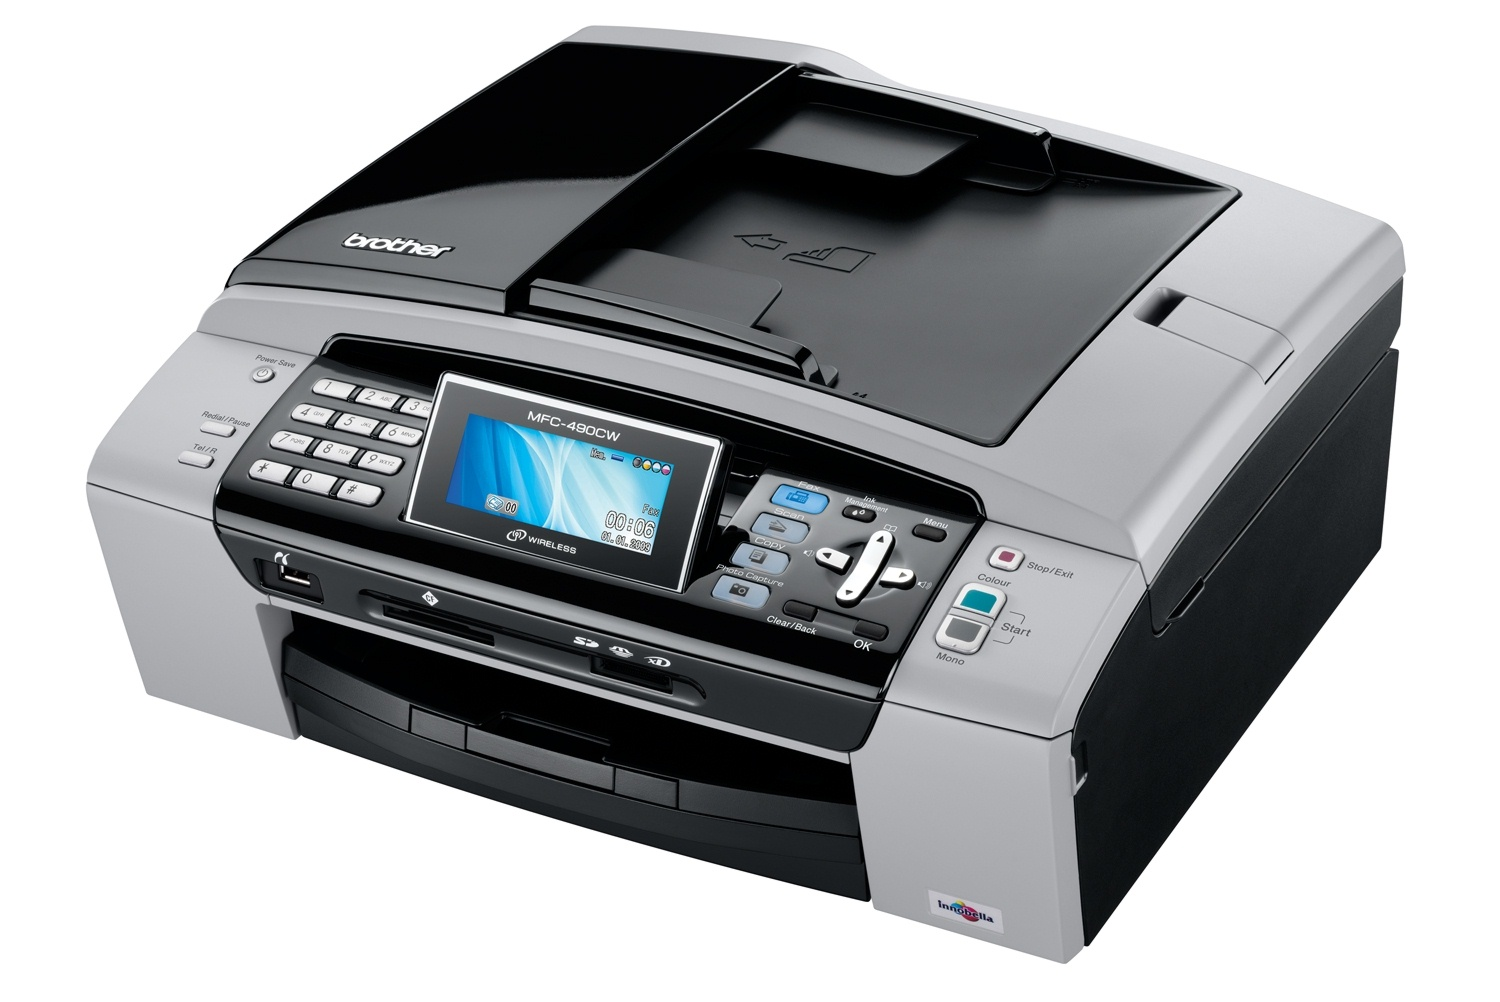 INSTALL BROTHER MFC-490CW WINDOWS 7 DRIVERS DOWNLOAD